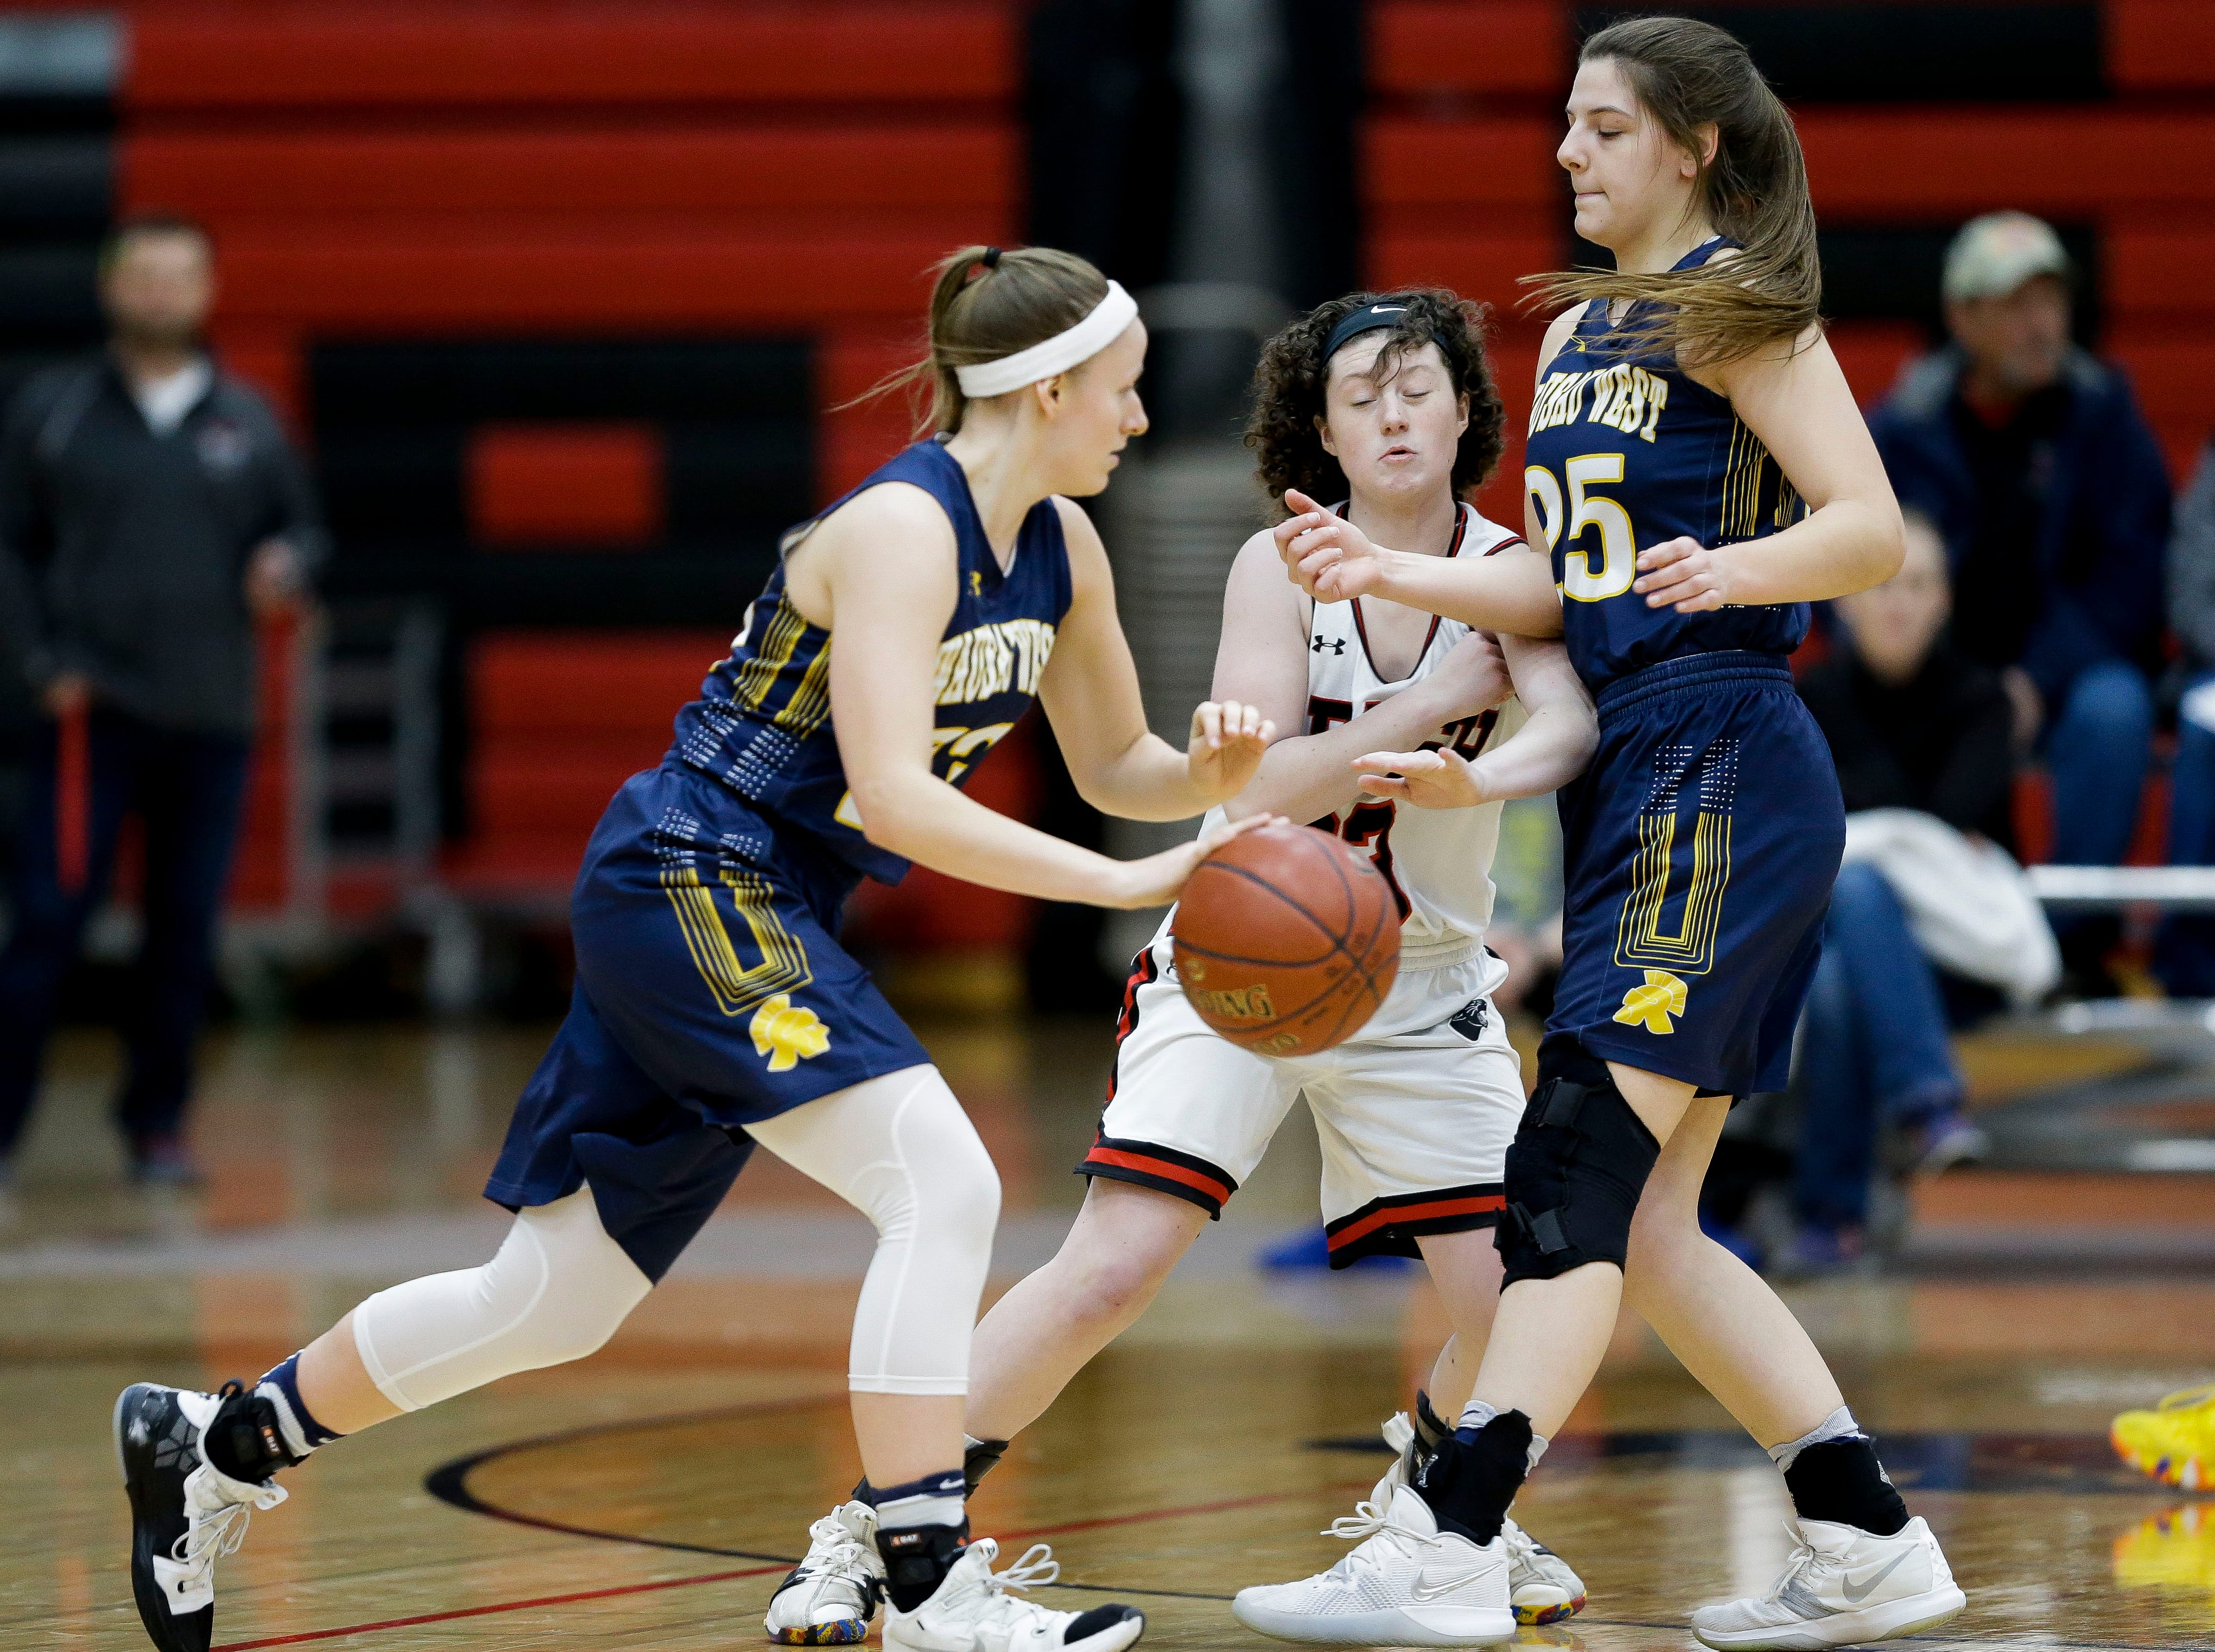 SPASH's Madisyn Rogan (center) fights through a screen against Wausau West on Thursday, February 14, 2019, at SPASH in Stevens Point, Wis.Tork Mason/USA TODAY NETWORK-Wisconsin